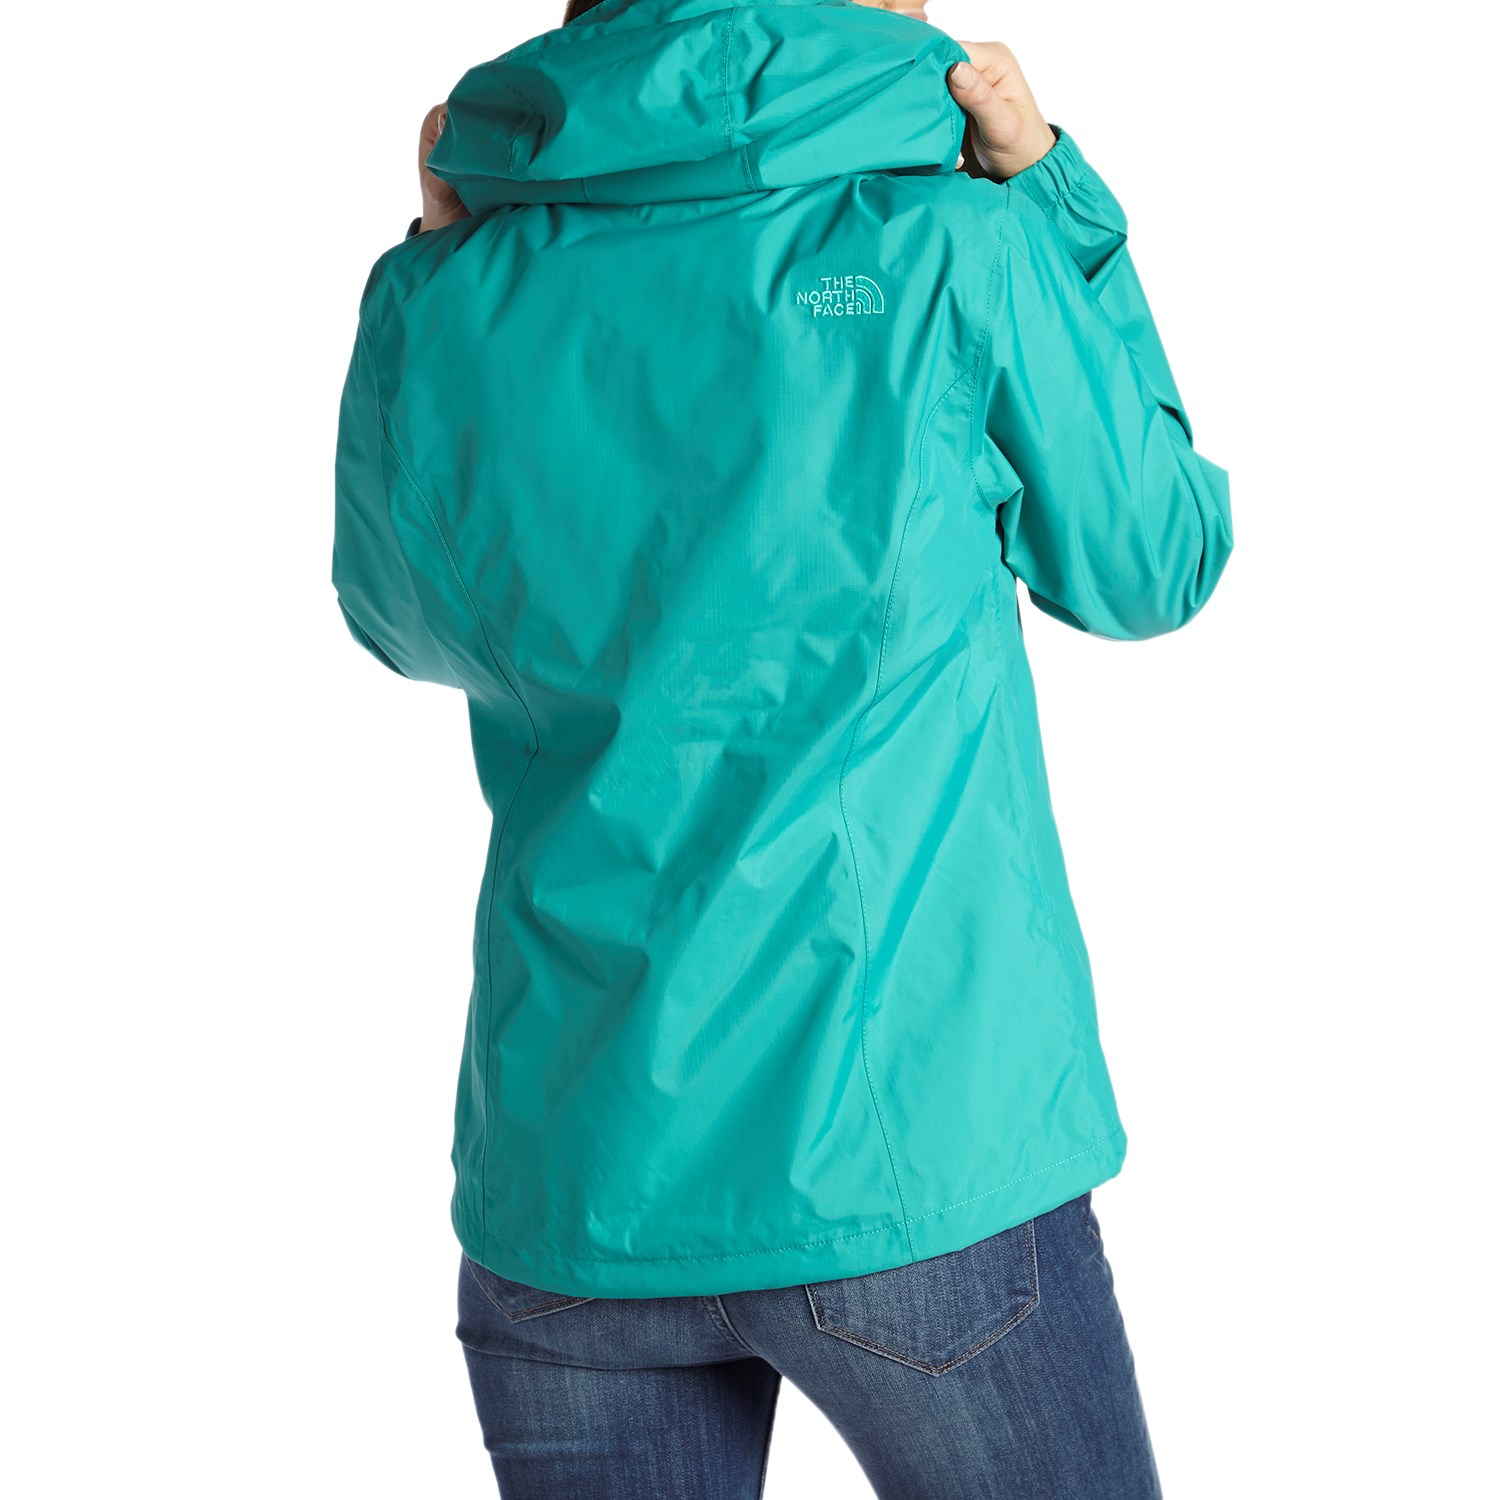 5318a083c The North Face Resolve 2 Jacket - Women's